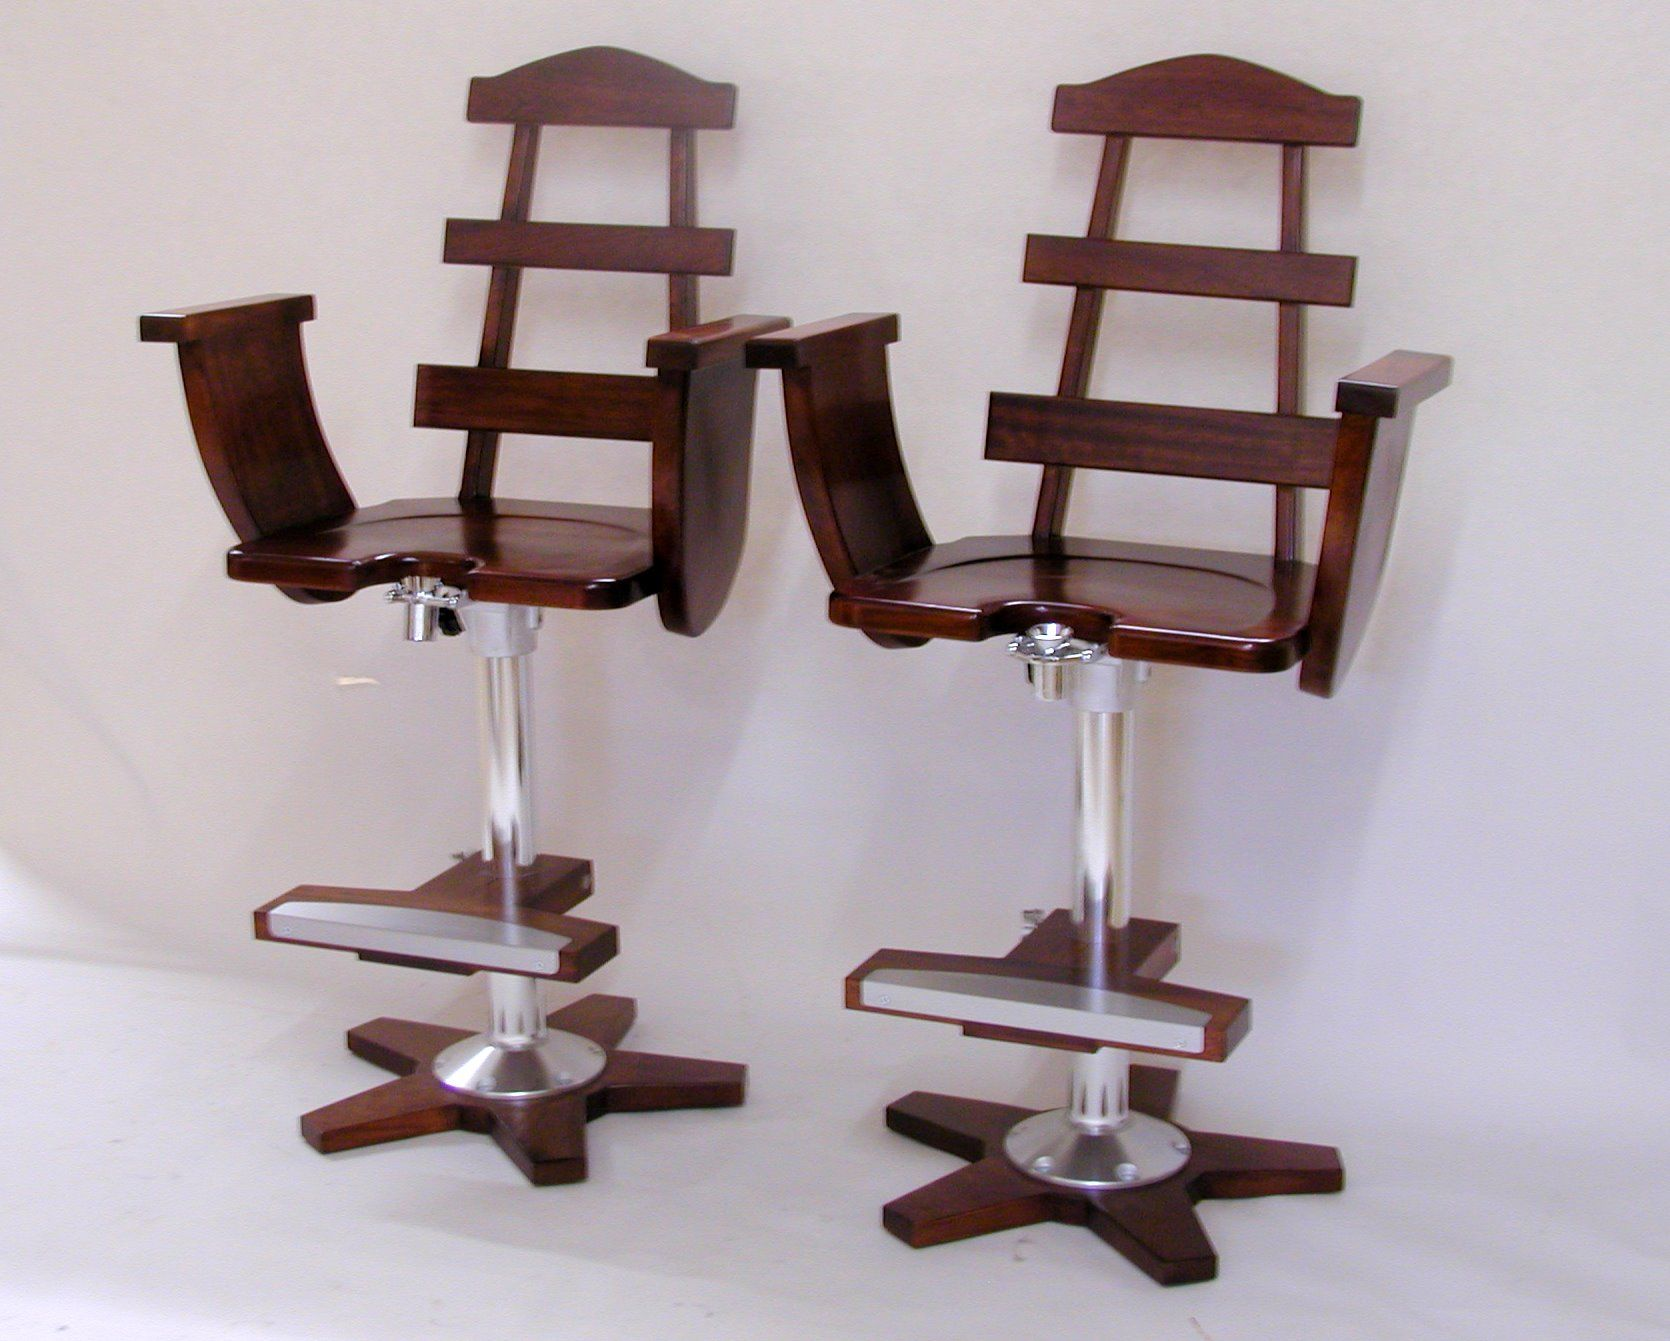 These are replicas of the Thomasville Hemingway Pilar Fighting Chairs I put 2 of the